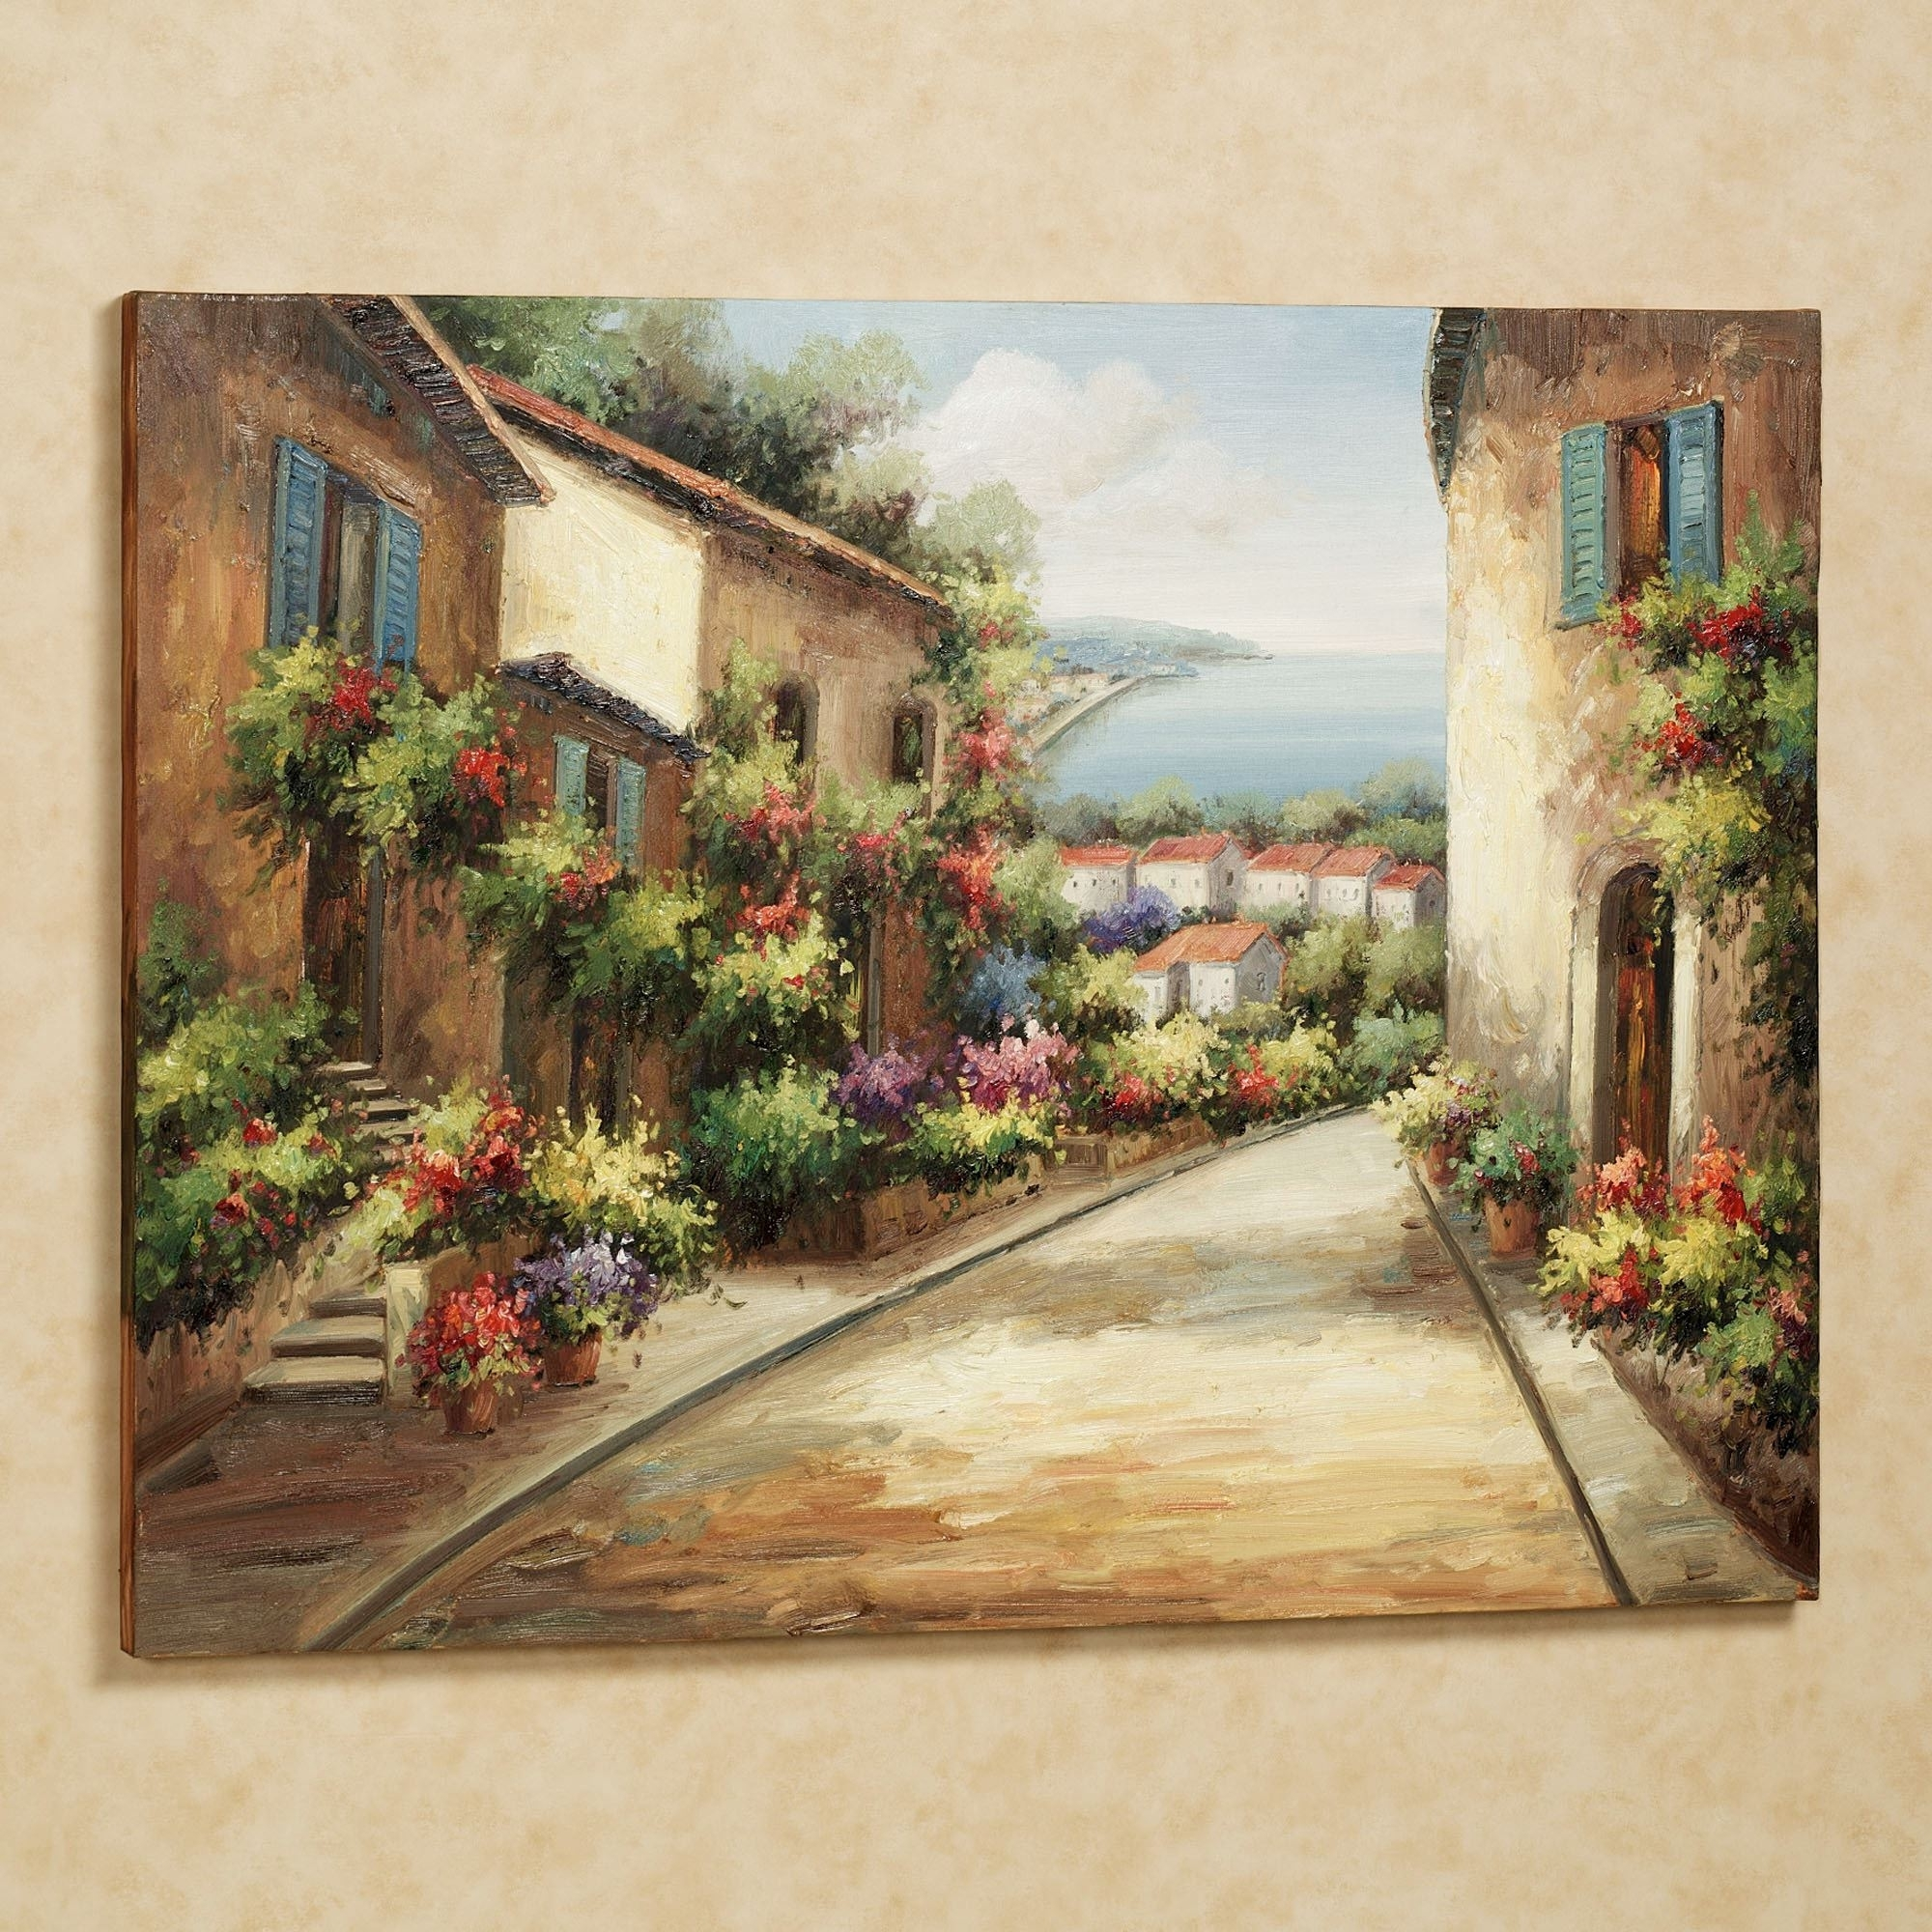 Kitchen : Framed Wall Art Unusual Wall Art Home Decor Wall Art Art Throughout Latest Framed Italian Wall Art (View 11 of 15)